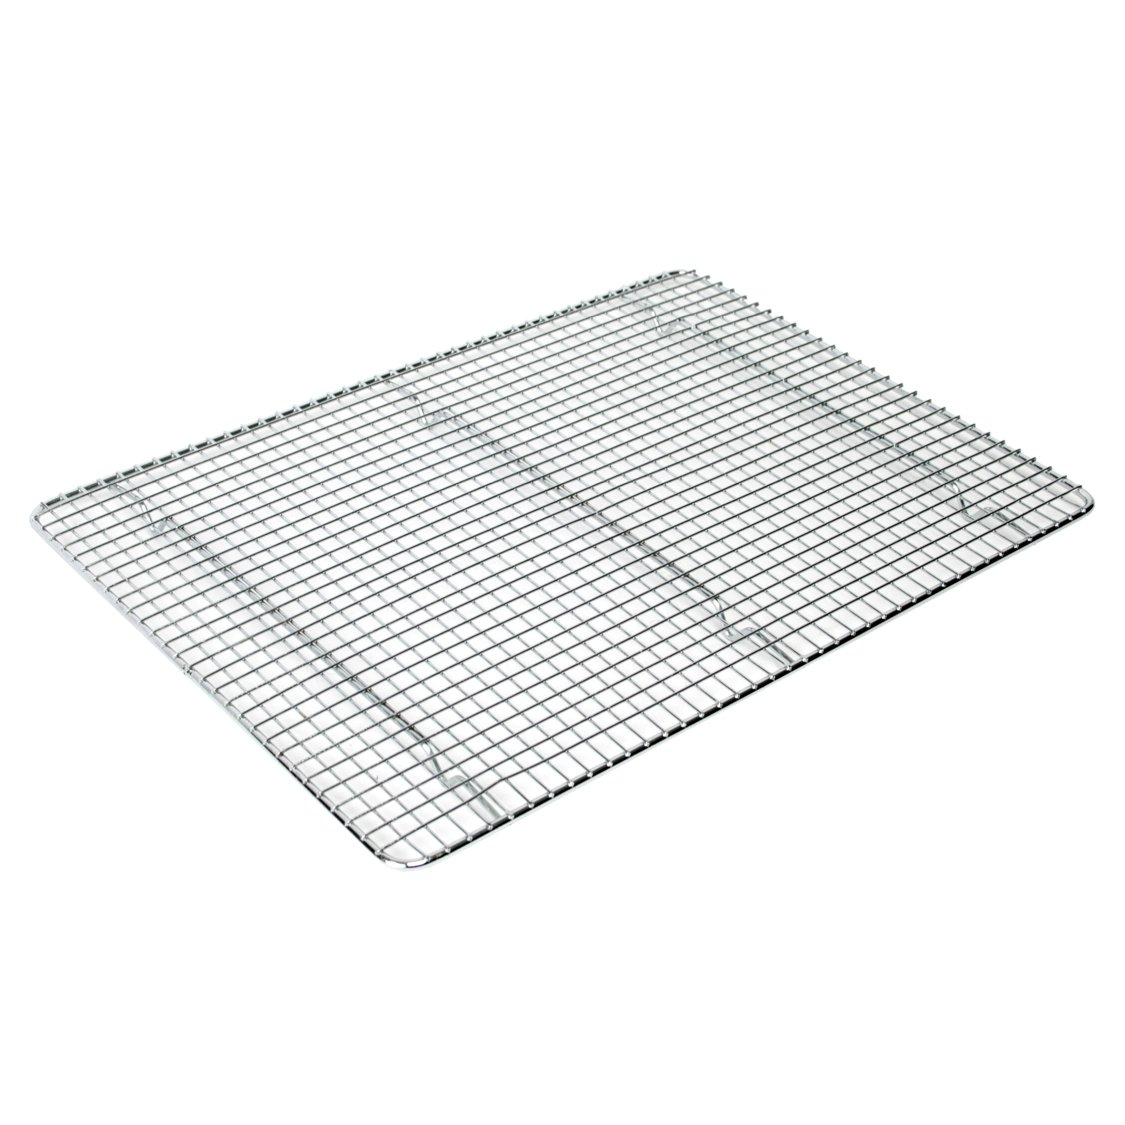 Excellante Icing/Cooling Rack With Built-In Feet, Chrome, 16.13 X 23.75 Inch